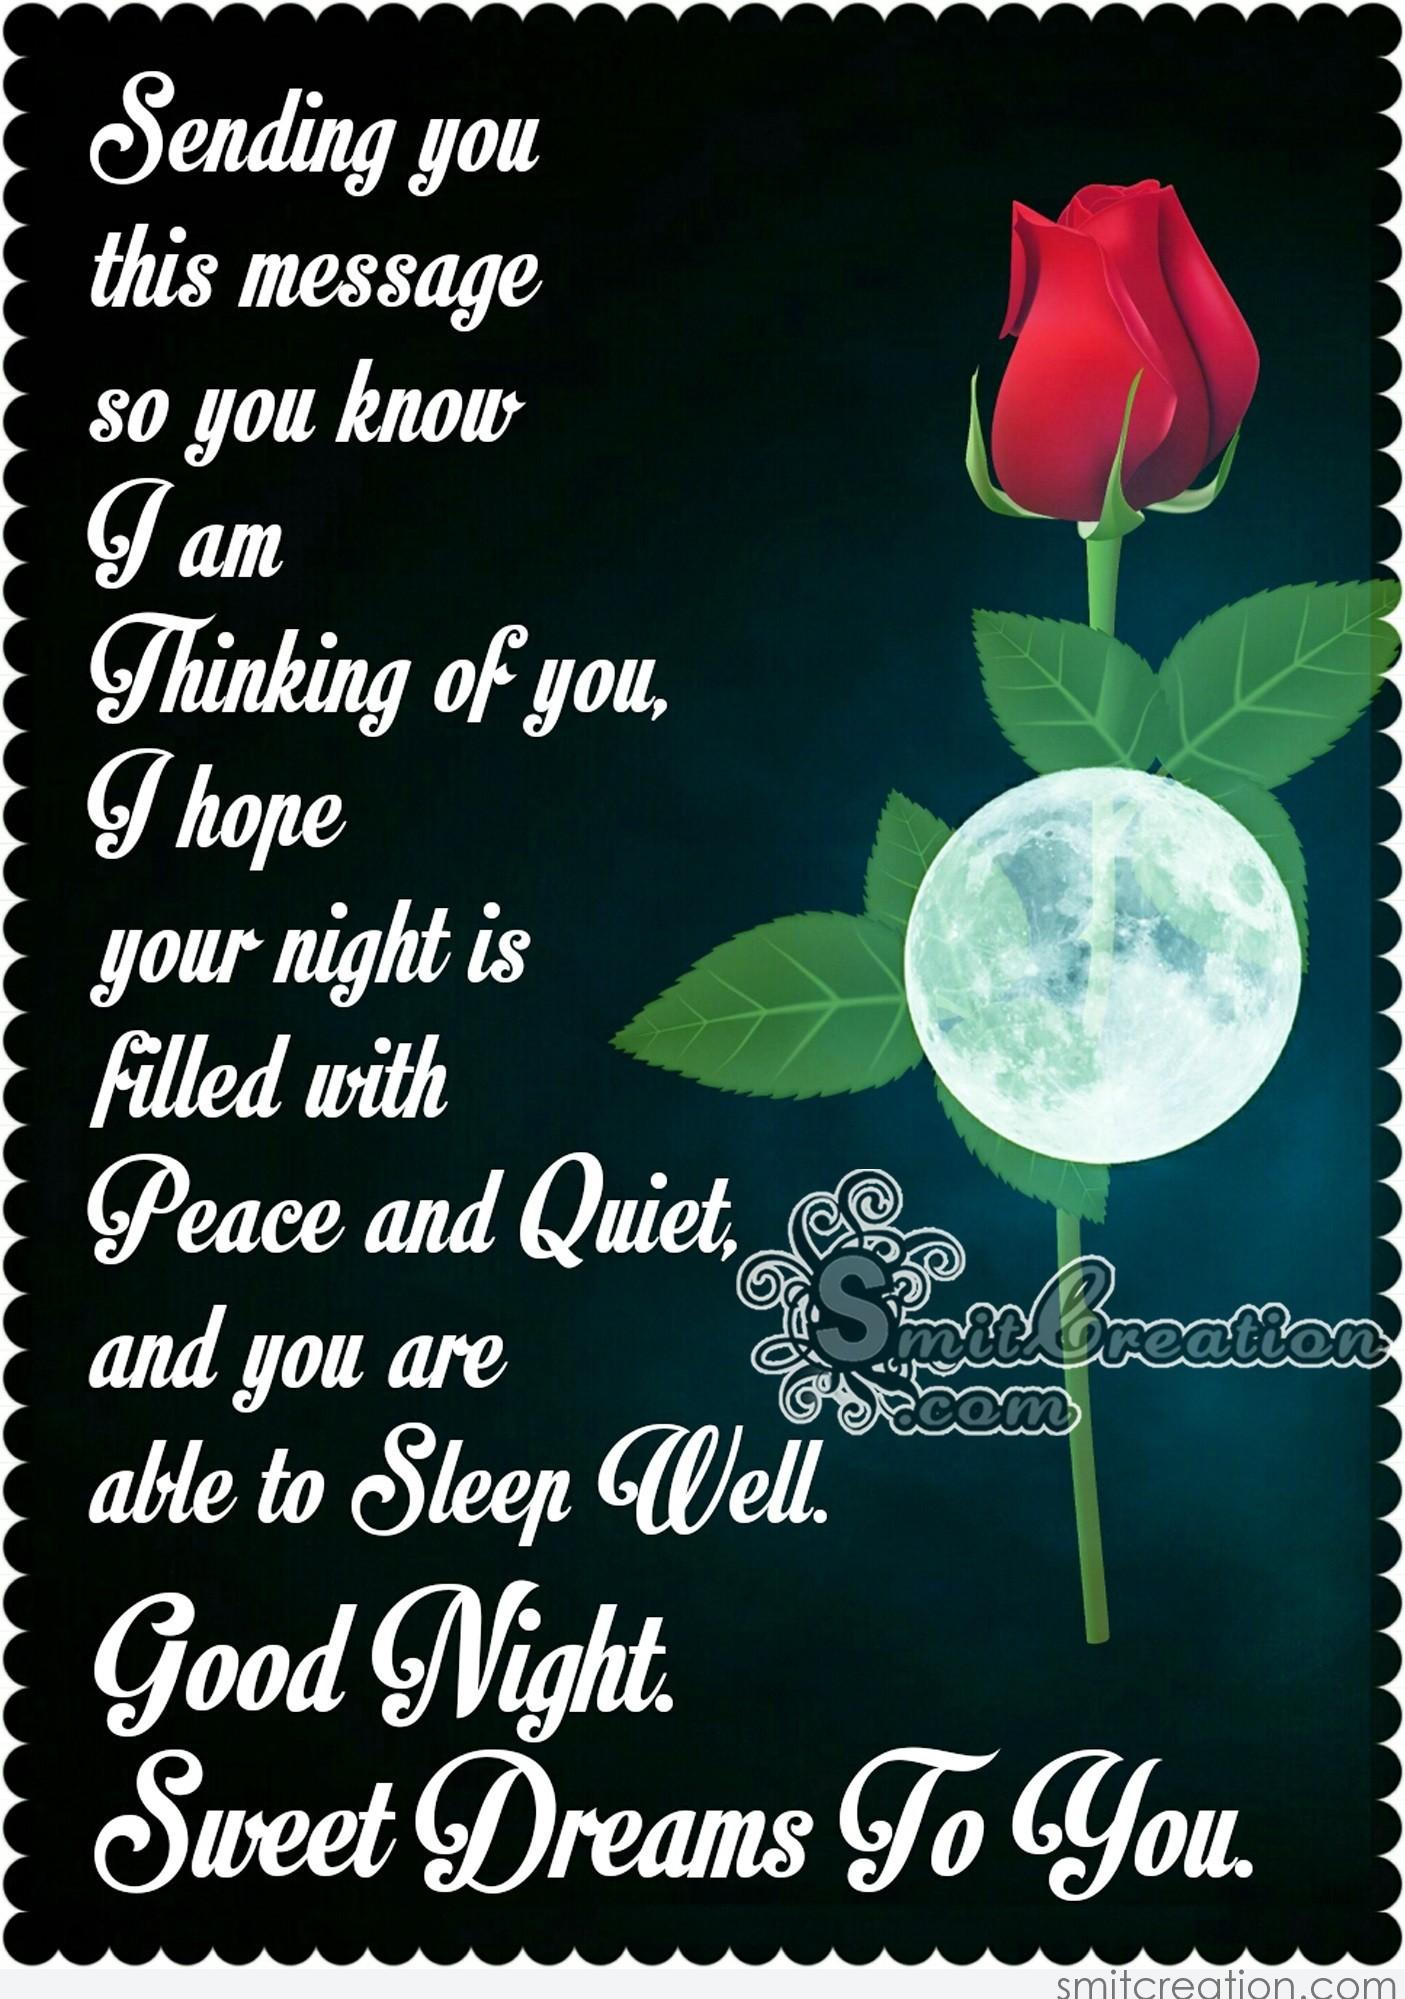 Good Night Message Pictures And Graphics Smitcreation Com Page 2